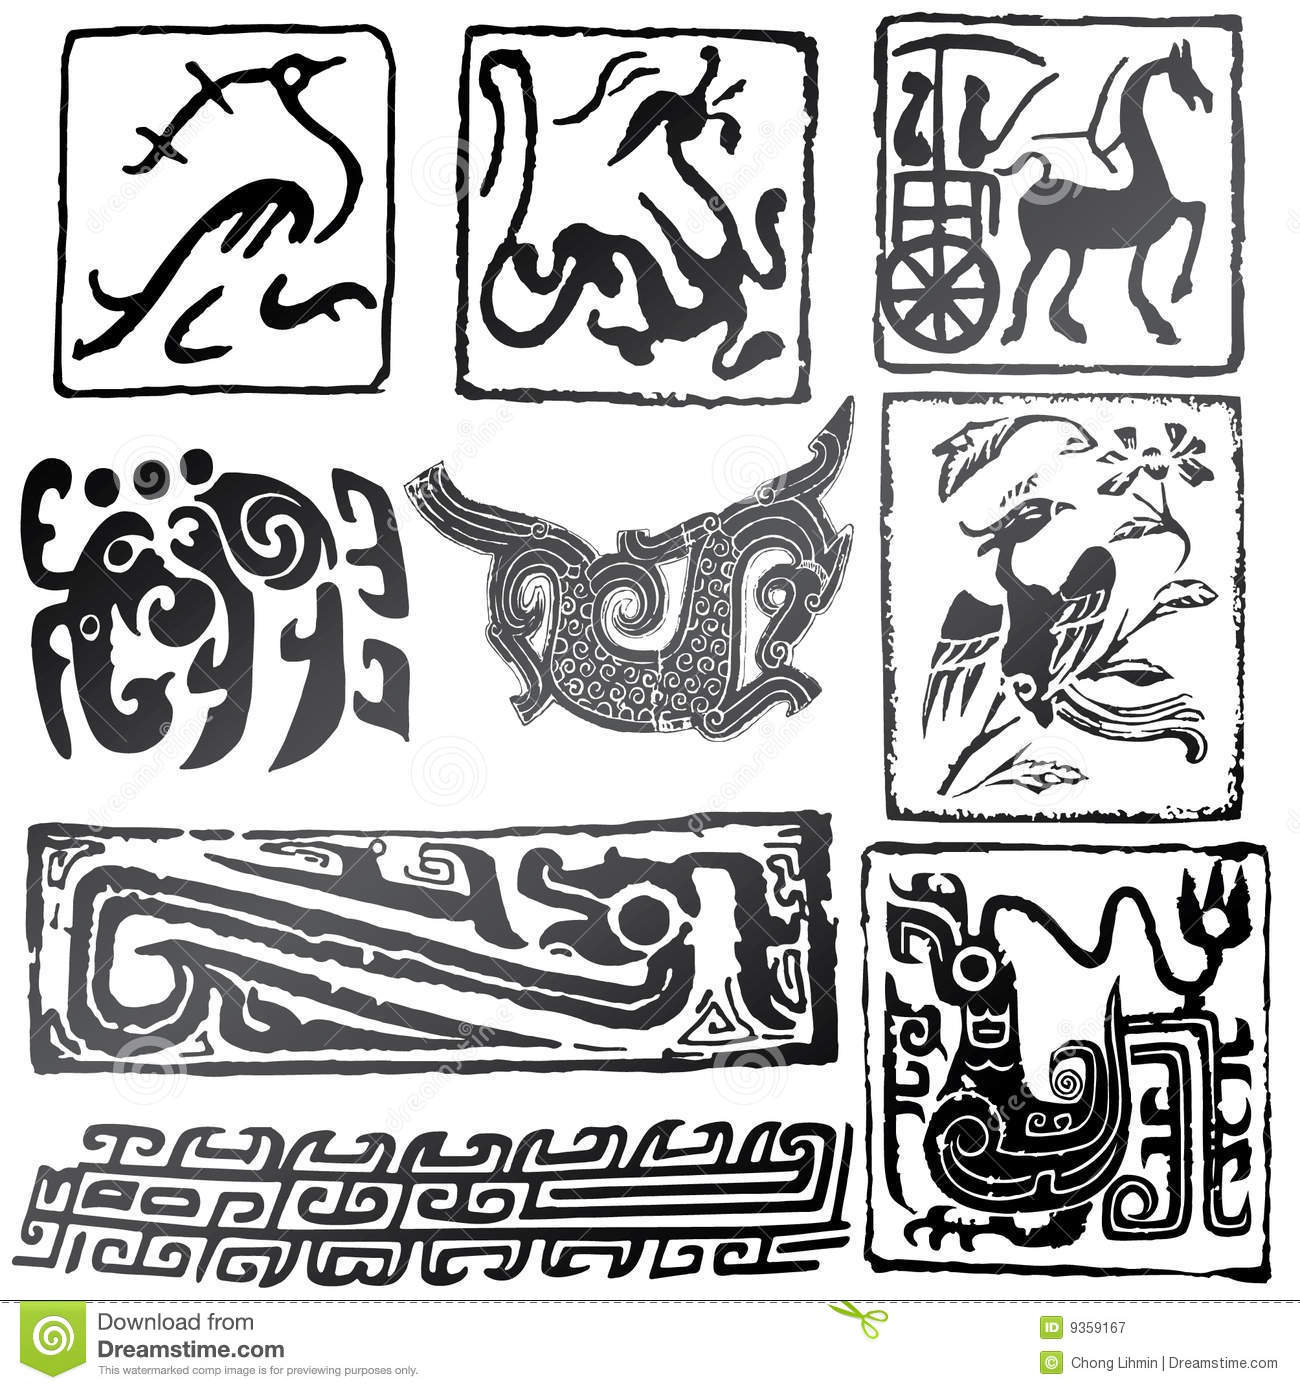 Ancient Signs & Symbols Royalty Free Stock Photography. How To Make Crushed Ice Good Business Website. Chiropractic Expert Witness Ha Auto Repair. Forest Park Swim Center Sunset Window Tinting. Malpractice Attorney Orange County. Student Financial Planner Drip Email Campaign. Auto Insurance Quotes Allstate. Shoreline Community College Nursing. Tips For Investing Money Basement Water Leak